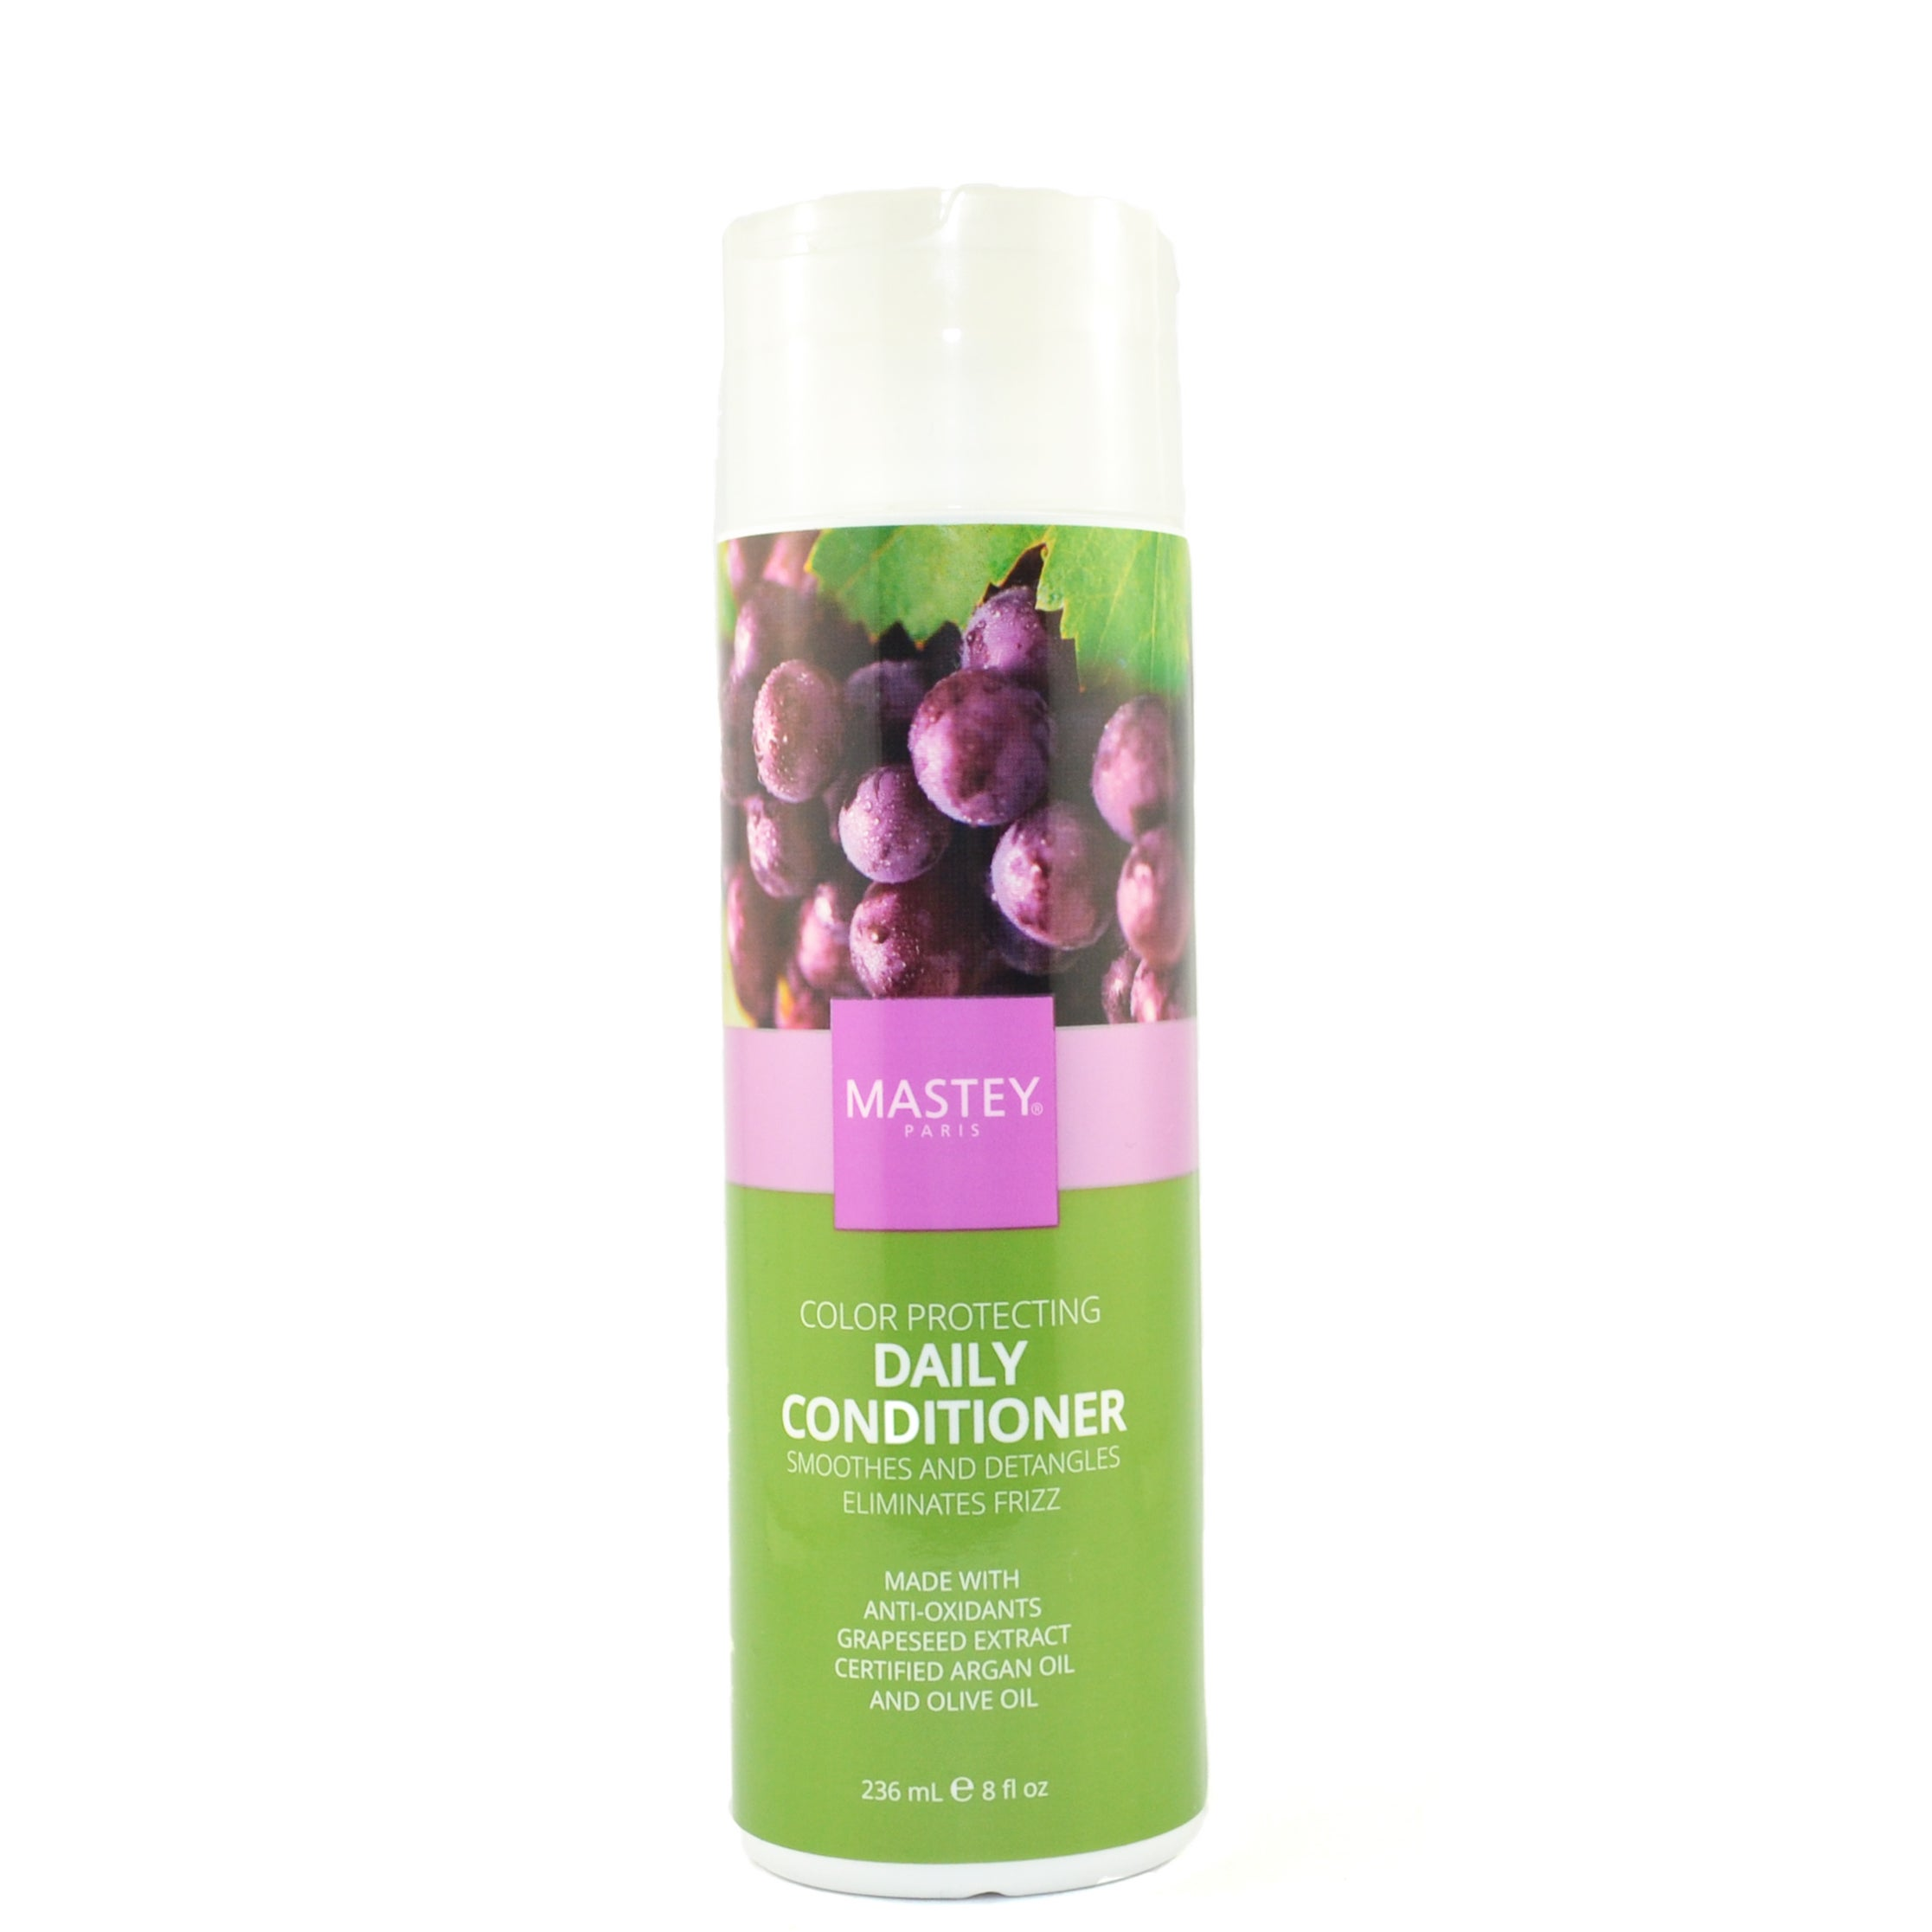 Mastey 8-ounce Color Protecting Daily Conditioner, Size 7...